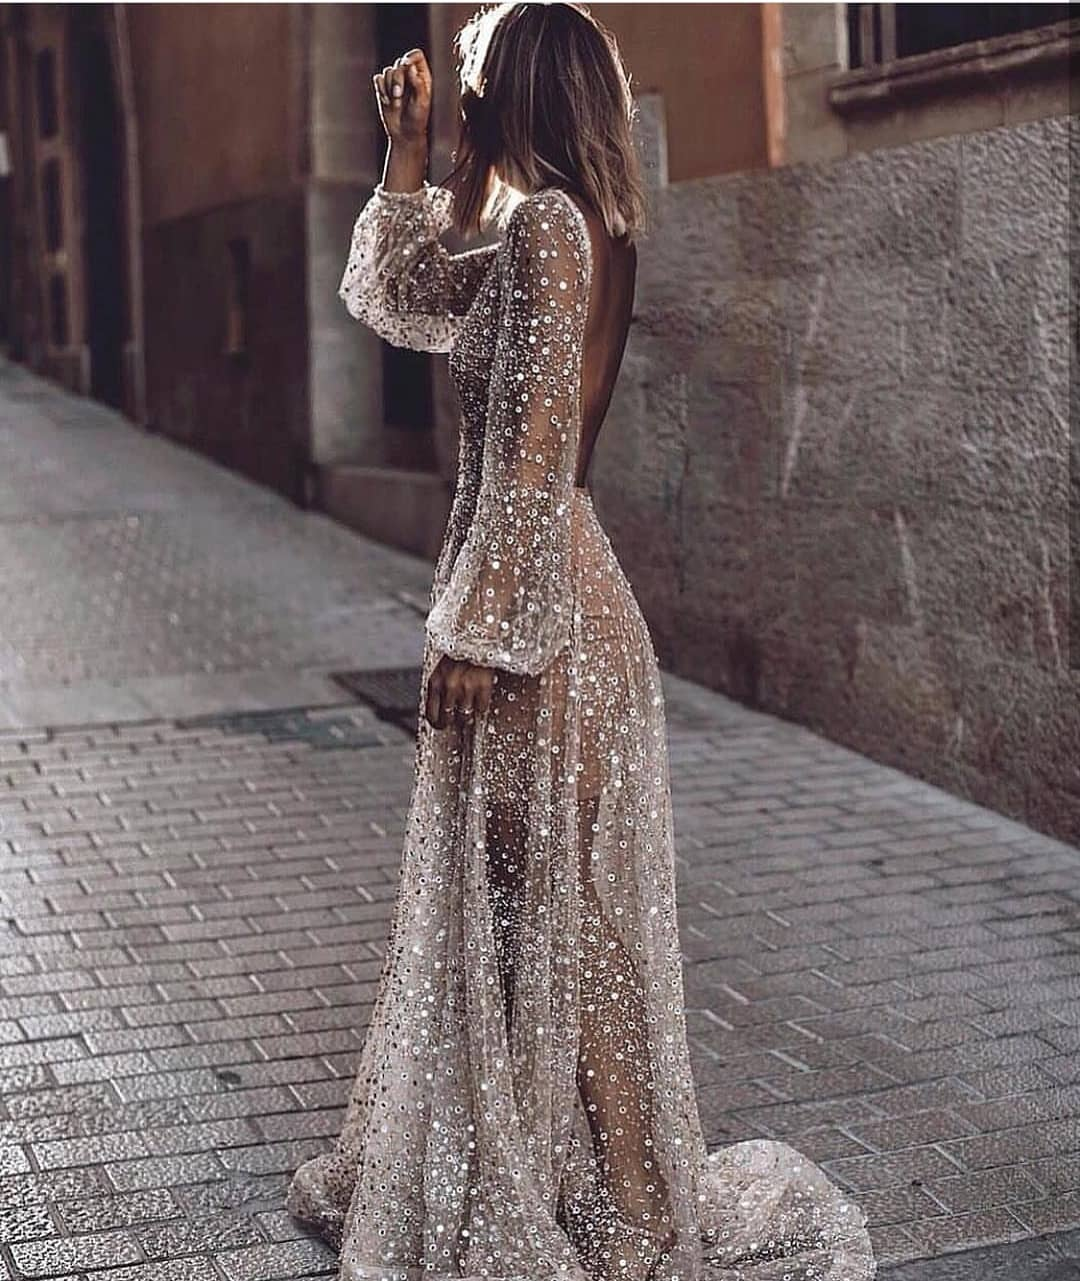 Sheer Sequined Maxi Gown With Open Back For Summer Cocktail Parties 2019